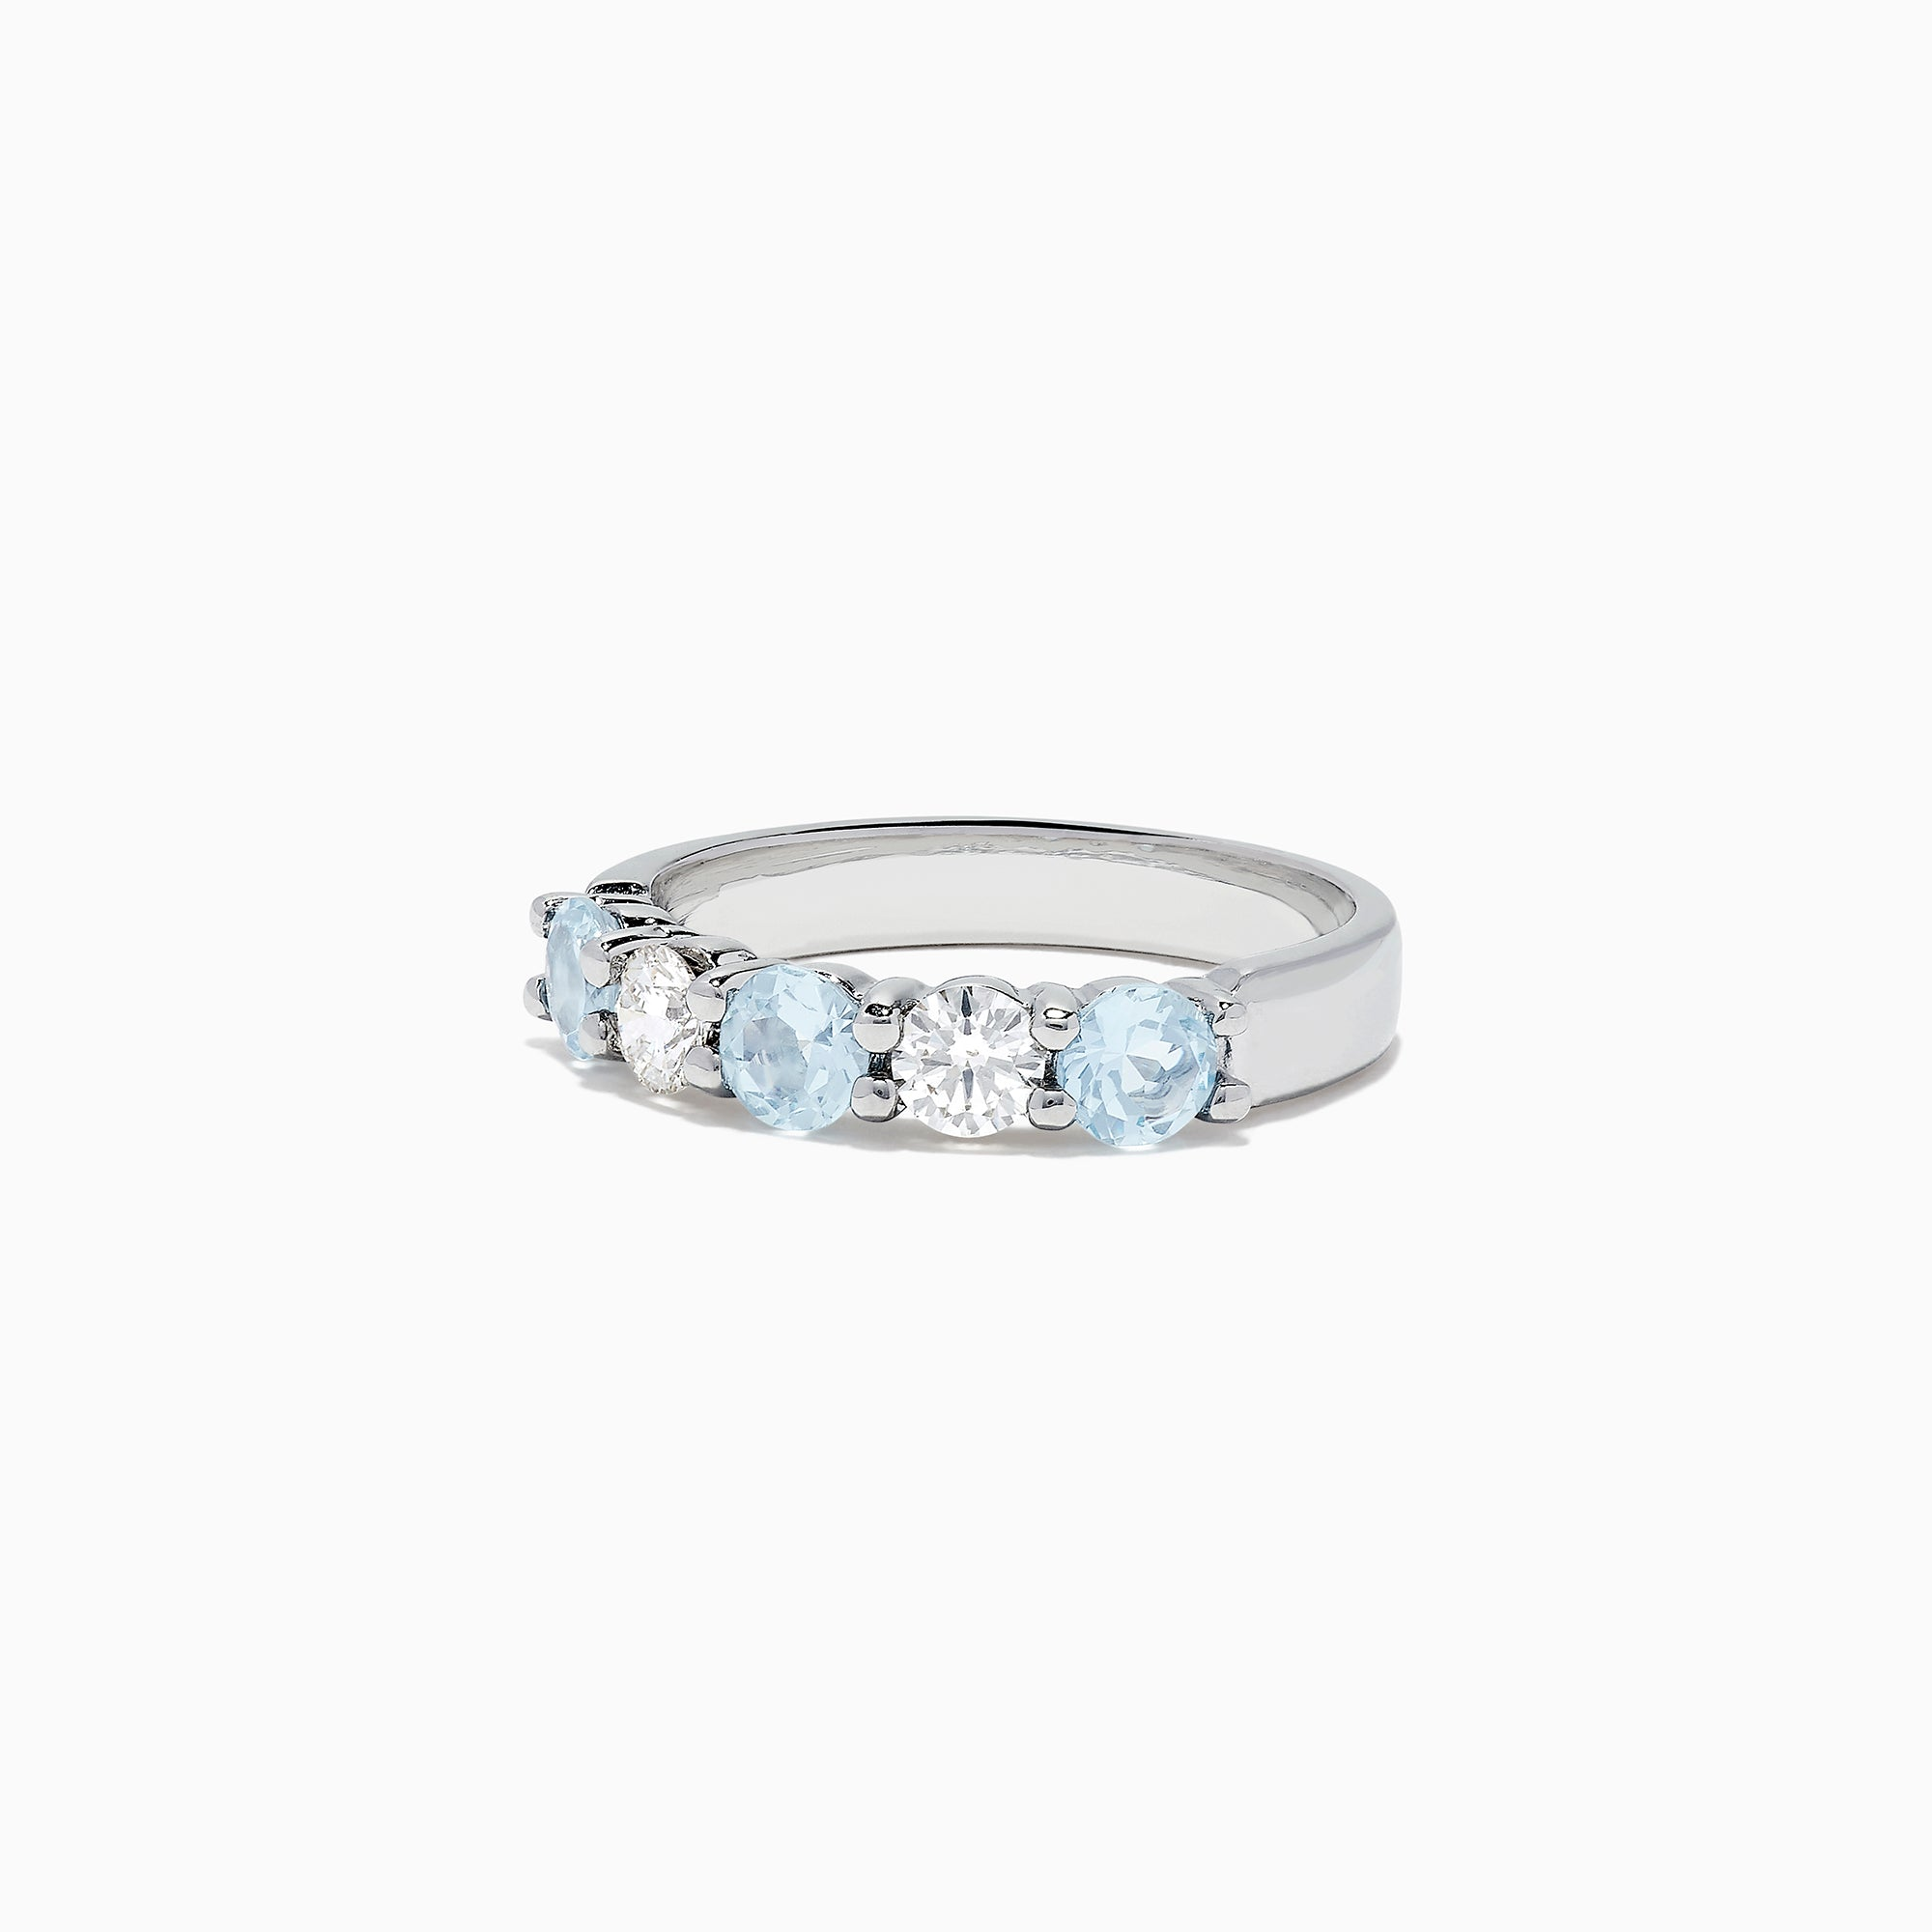 Effy Aquarius 14K White Gold Aquamarine and Diamond Ring, 1.79 TCW